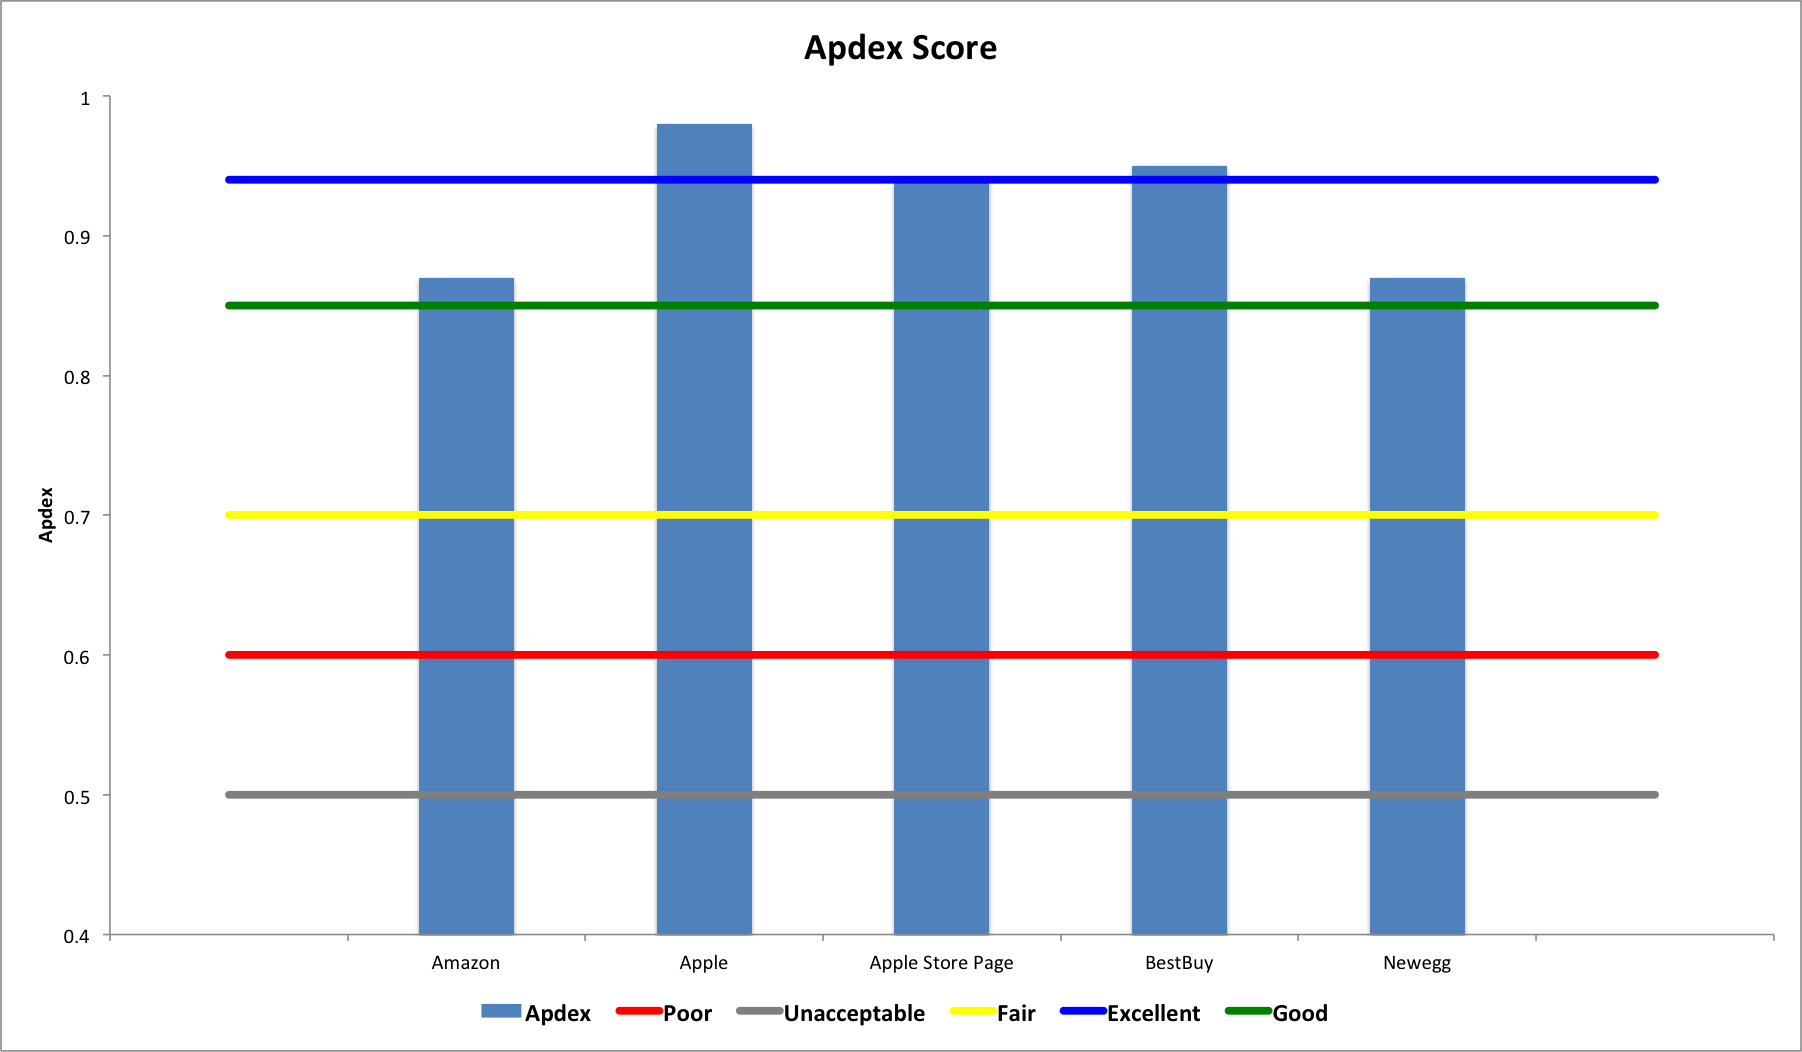 Ecommerce Benchmark: Apdex Score for Apple, Apple Store, NewEgg, BestBuy and Amazon